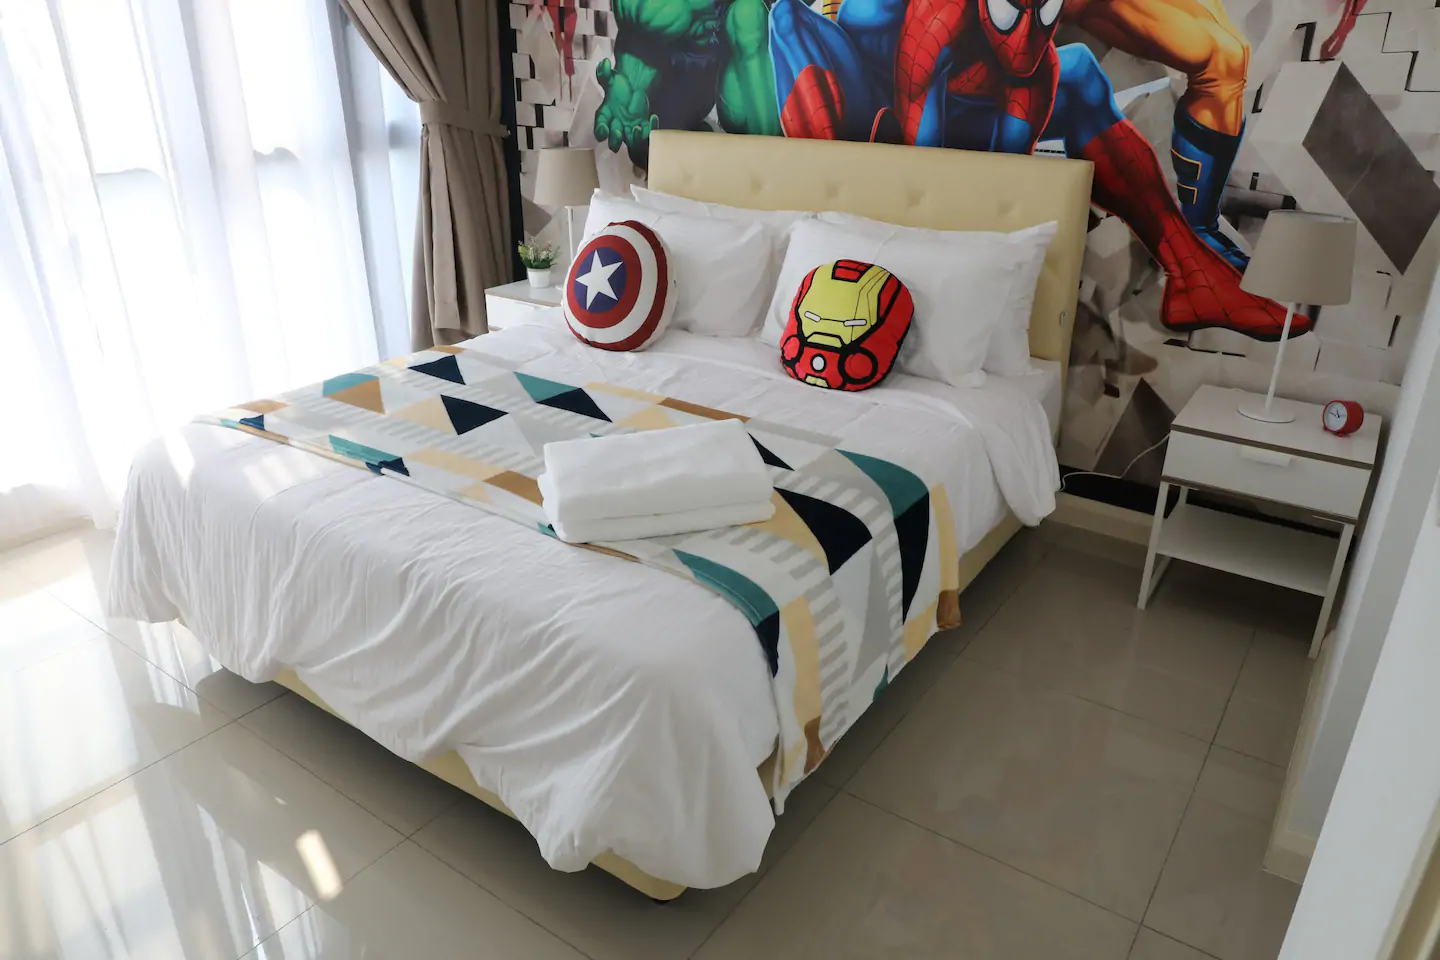 2min To LEGOLAND  Airport Pick Up  1BR 1209  T1